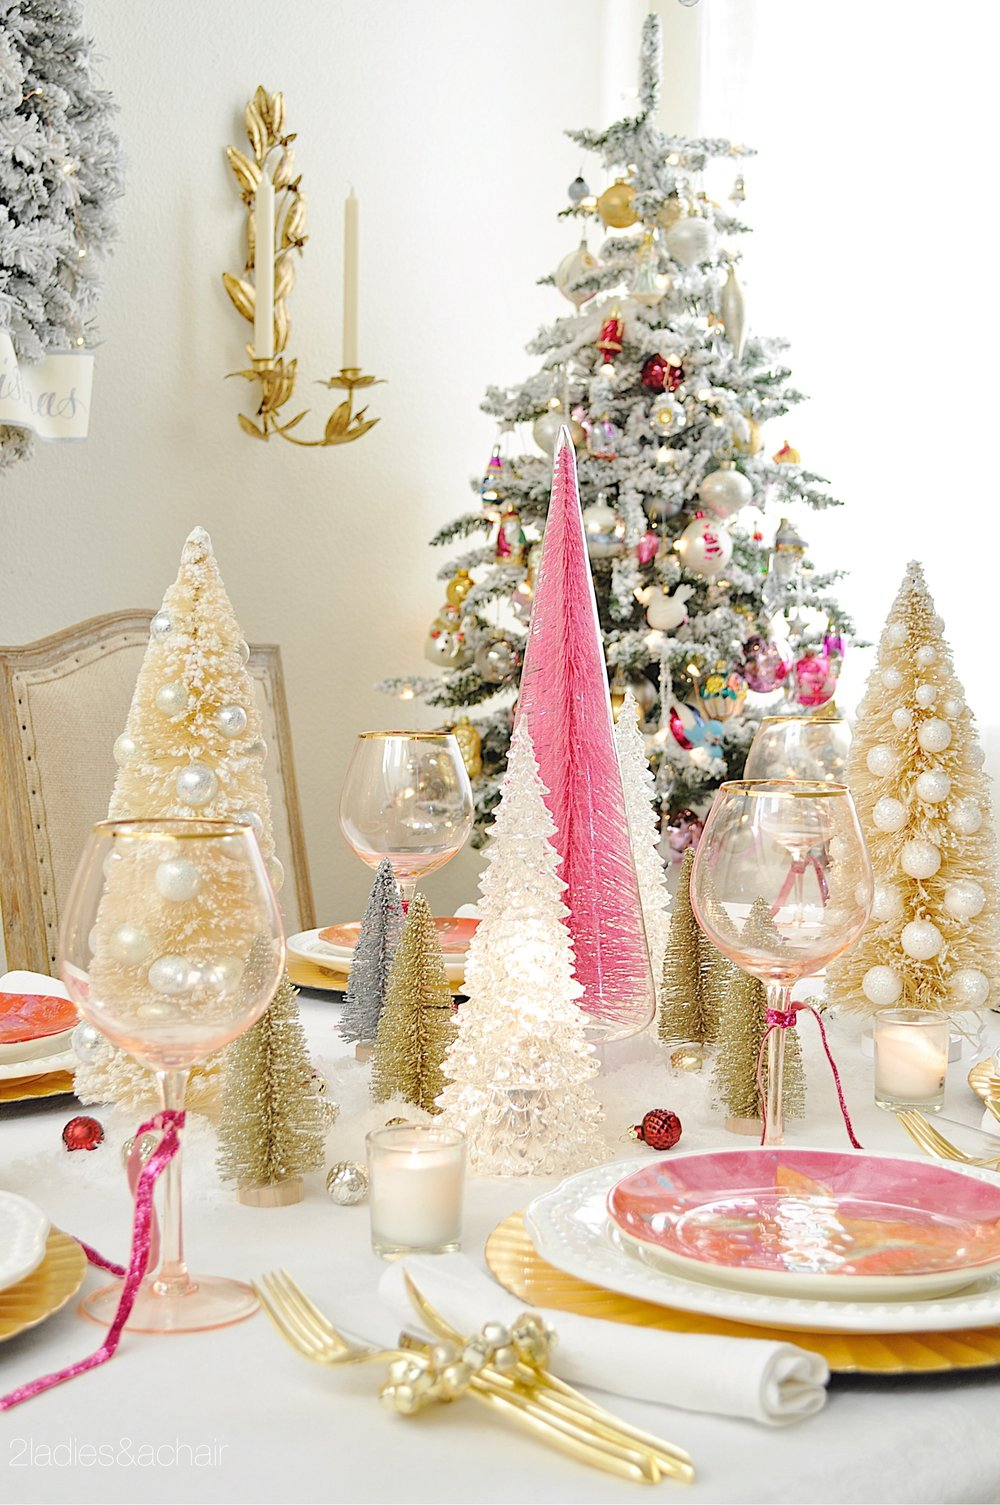 christmas tablescape ideas IMG_8740.JPG